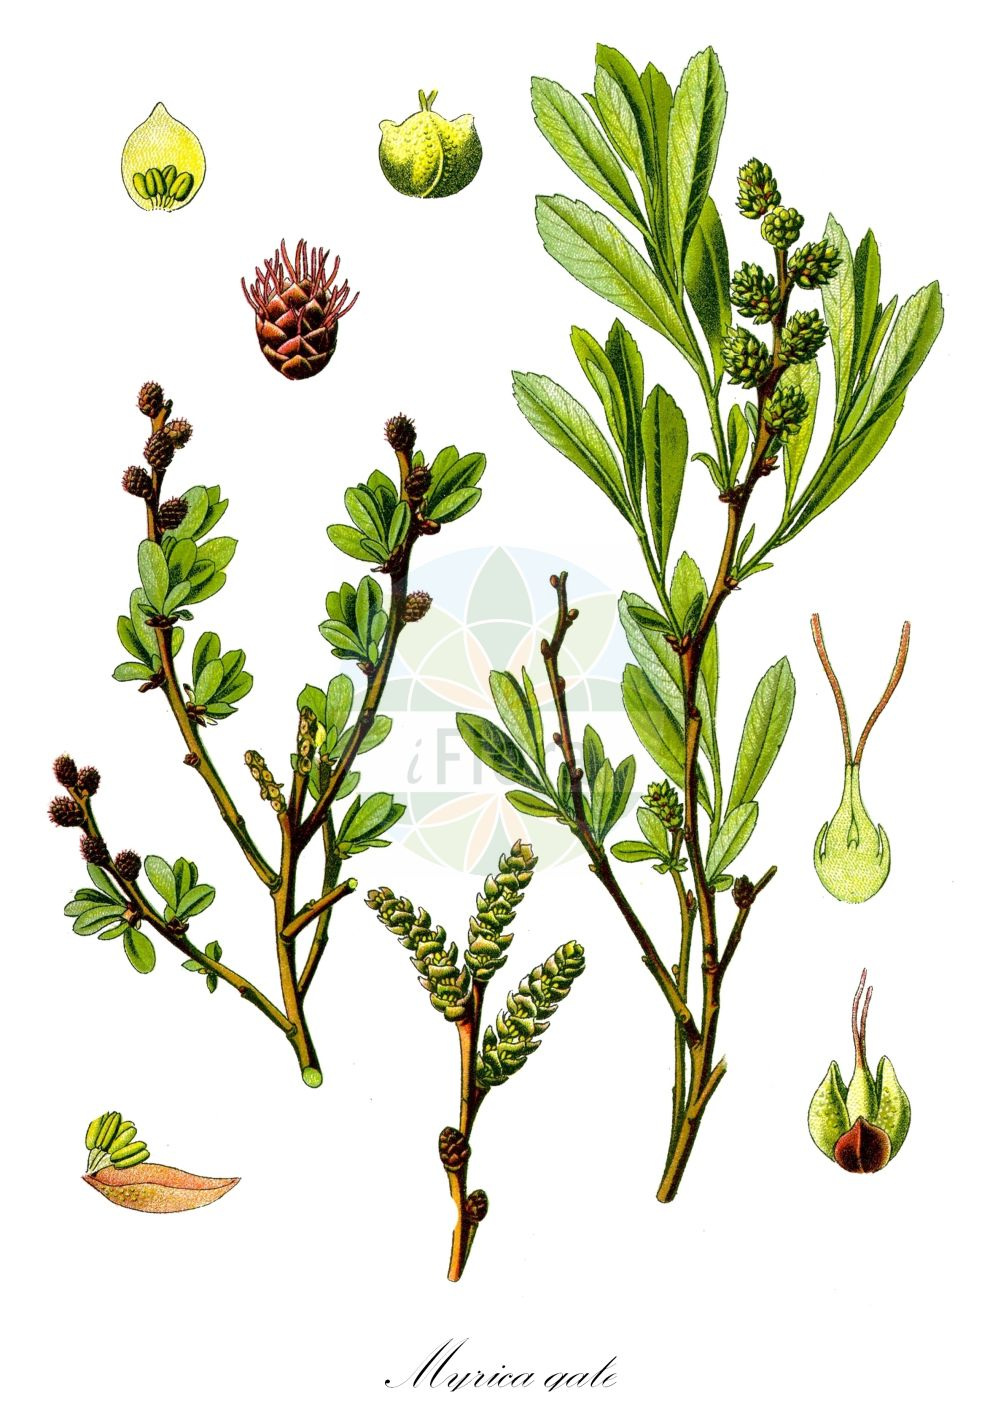 Historische Abbildung von Myrica gale (Gewoehnlicher Gagelstrauch - Bog-myrtle). Das Bild zeigt Blatt, Bluete, Frucht und Same. ---- Historical Drawing of Myrica gale (Gewoehnlicher Gagelstrauch - Bog-myrtle).The image is showing leaf, flower, fruit and seed. (Myrica gale,Gewoehnlicher Gagelstrauch,Bog-myrtle,Gale palustris,,Gagelstrauch,Bog Gale,Dutch Myrtle,Moor Myrtle,Sweet Gale,Waxberry,Myrica,Gagelstrauch,Sweetgale,Myricaceae,Gagelstrauchgewaechse,Sweetgale family,Blatt,Bluete,Frucht,Same,leaf,flower,fruit,seed,Thomé (1885))